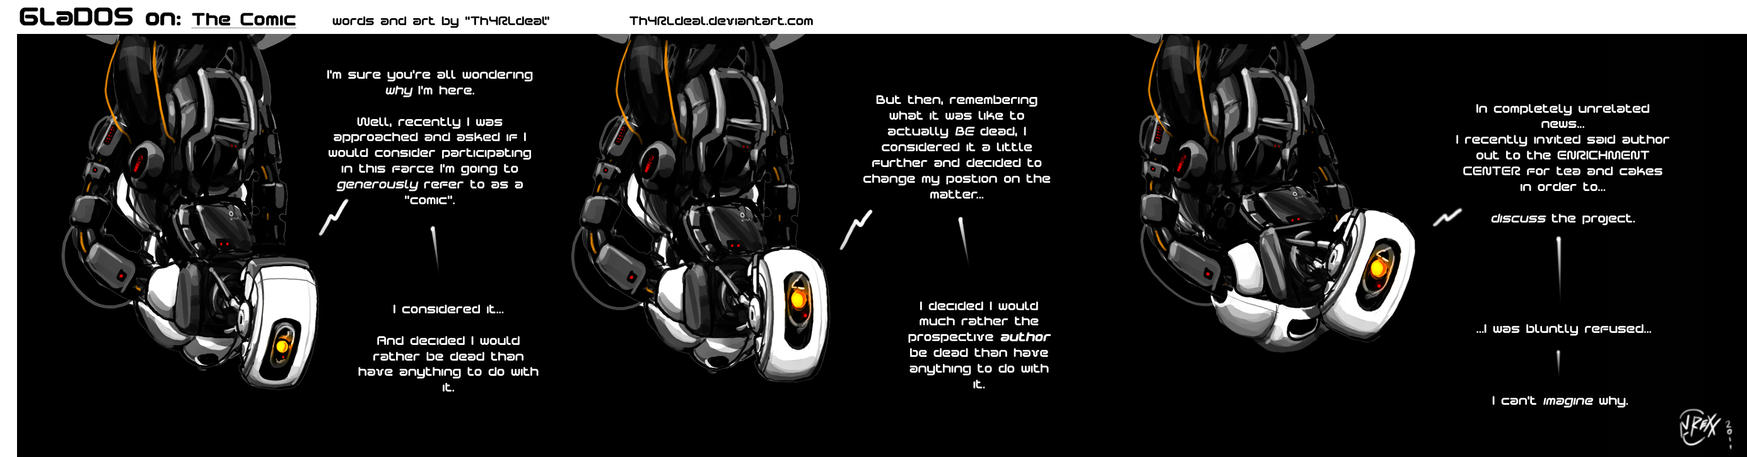 02 GLaDOS on: The Comic by Th4rlDEAL